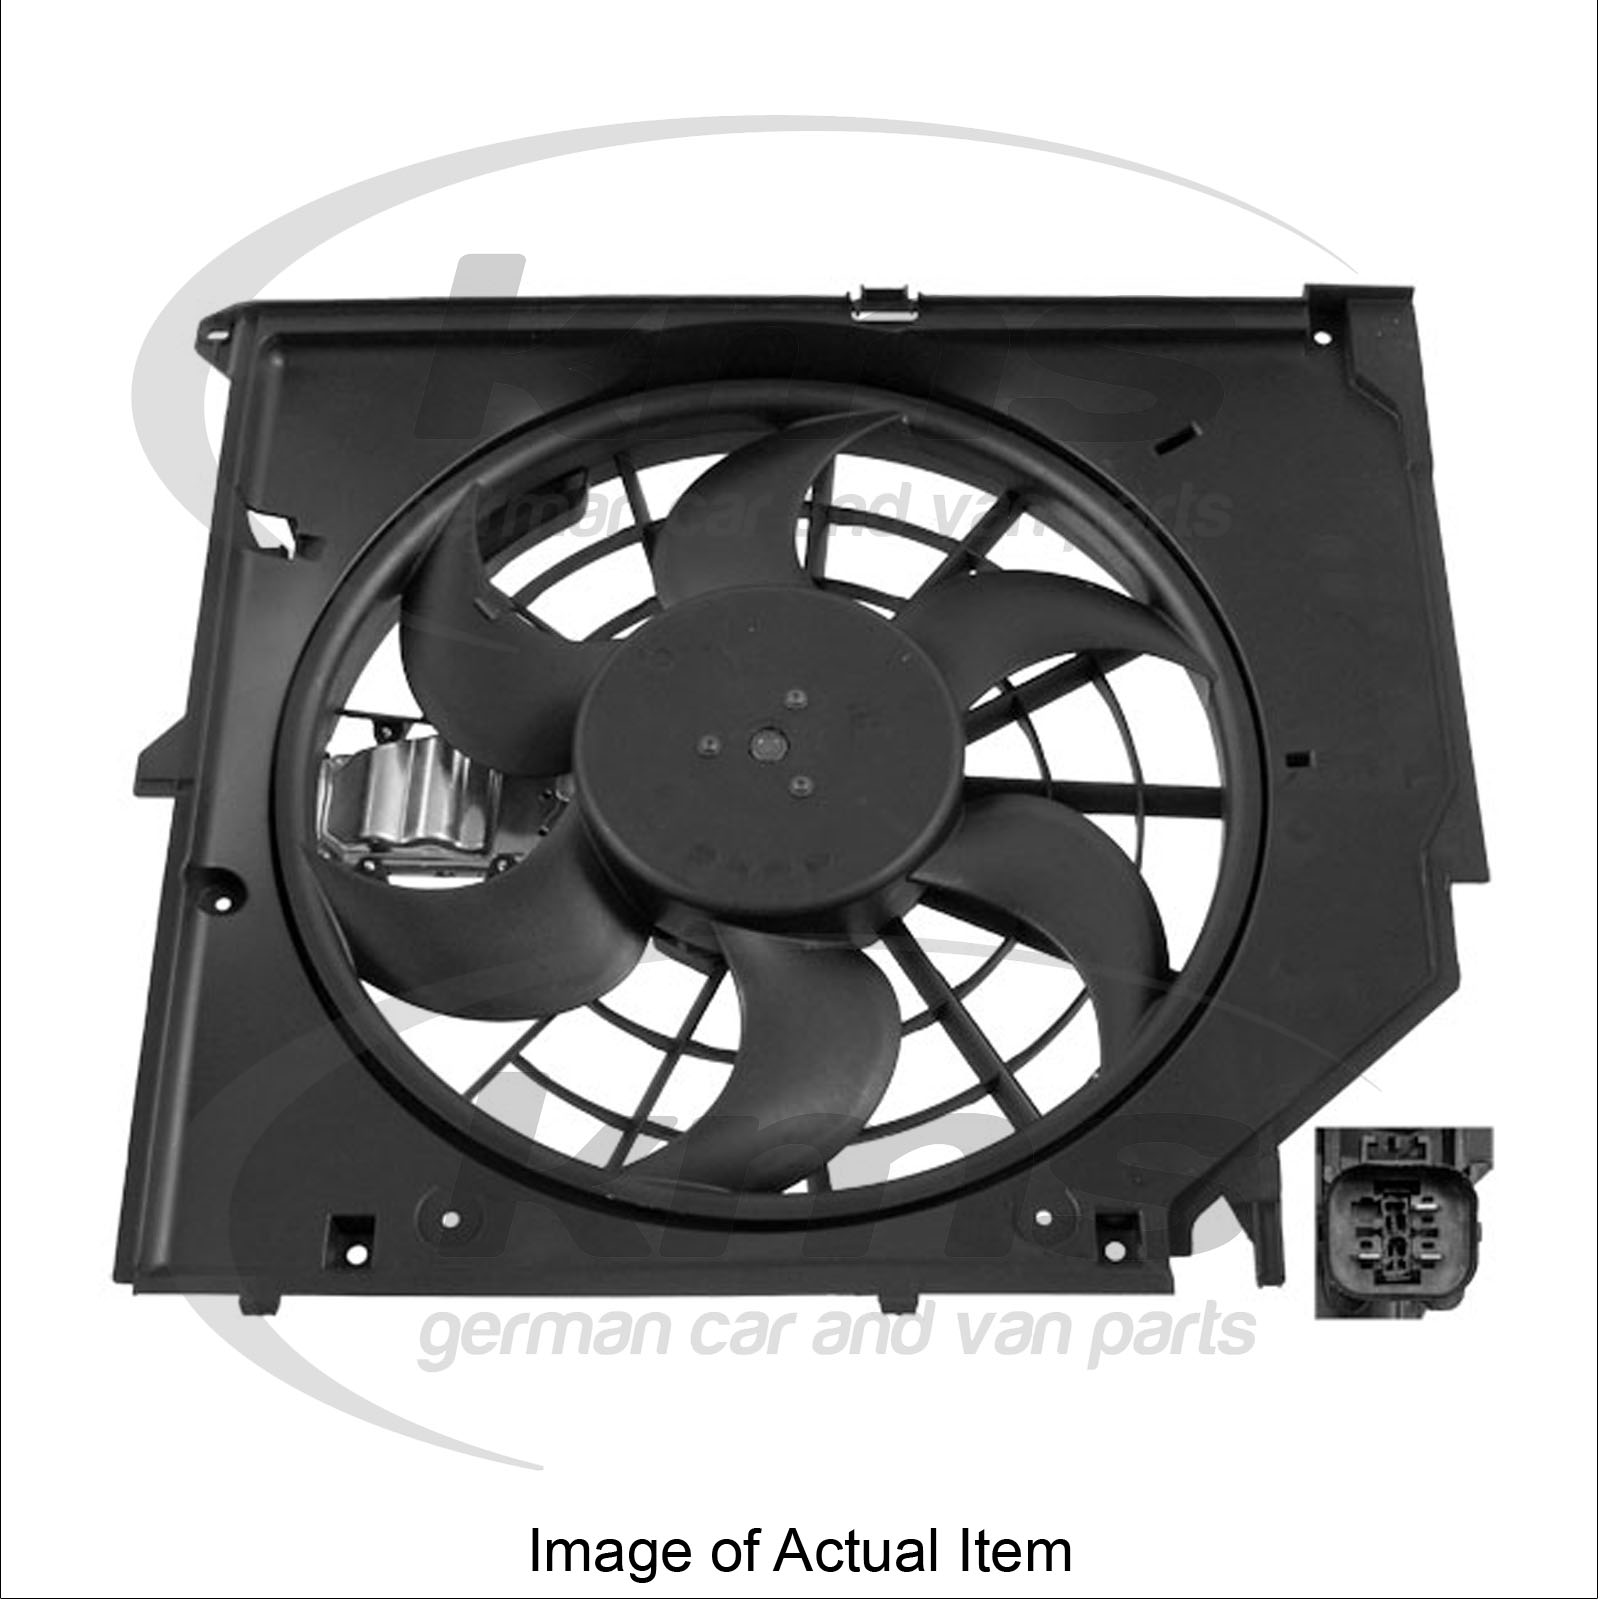 hight resolution of the mishimoto bmw e46 fan shroud kit includes a removal tool for the clutch fan as well as all hardware required for installation